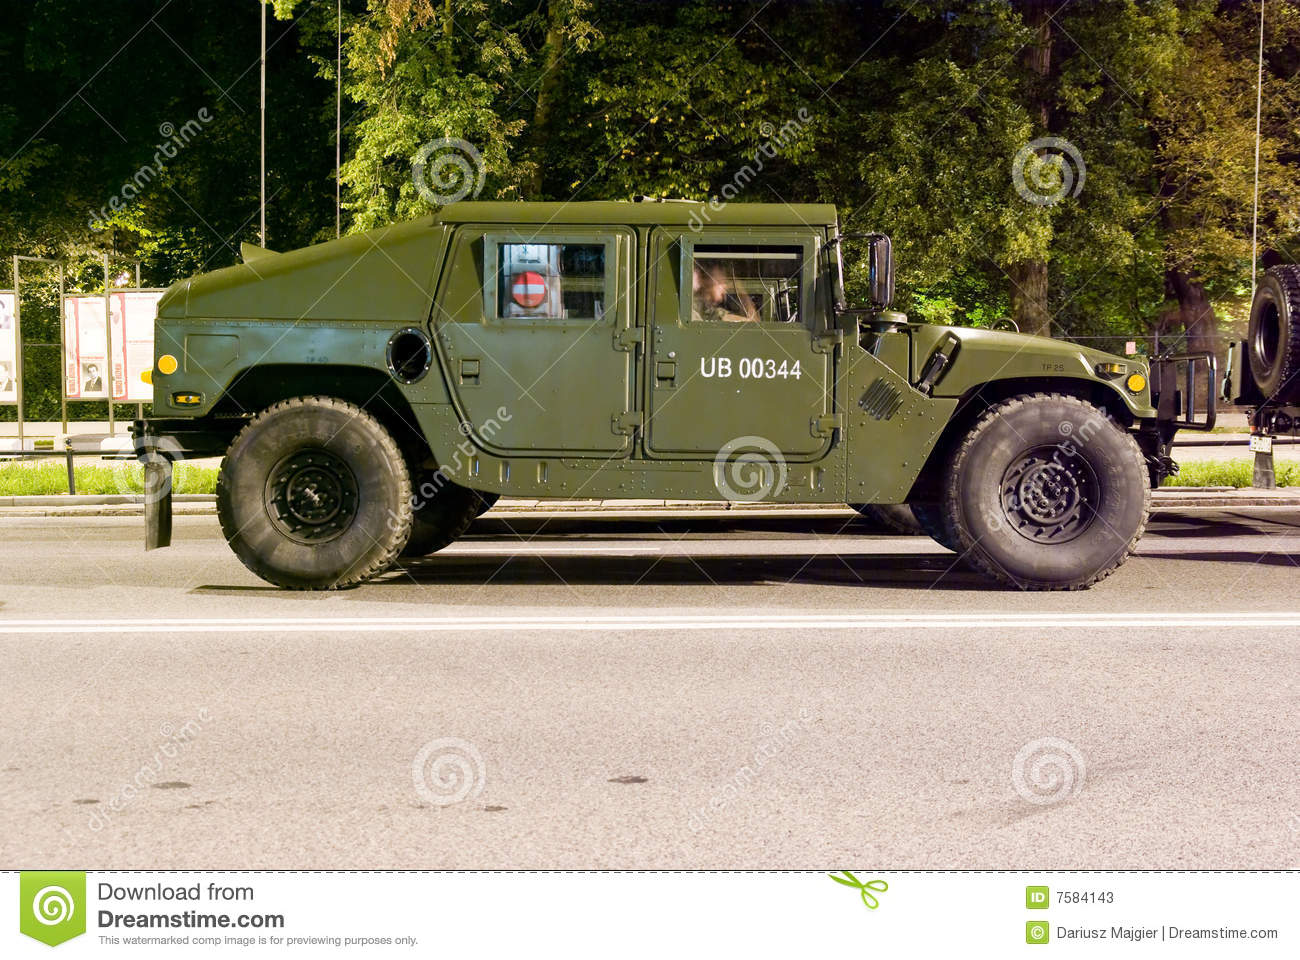 Military Surplus Humvee HMMWV furthermore CUCV M1008 Wiring Diagram moreover 1950 Chevy Truck 3100 For Sale together with Echlin Starter Solenoid Wiring as well Ford 3 Speed Overdrive Transmission. on m1009 wiring diagram